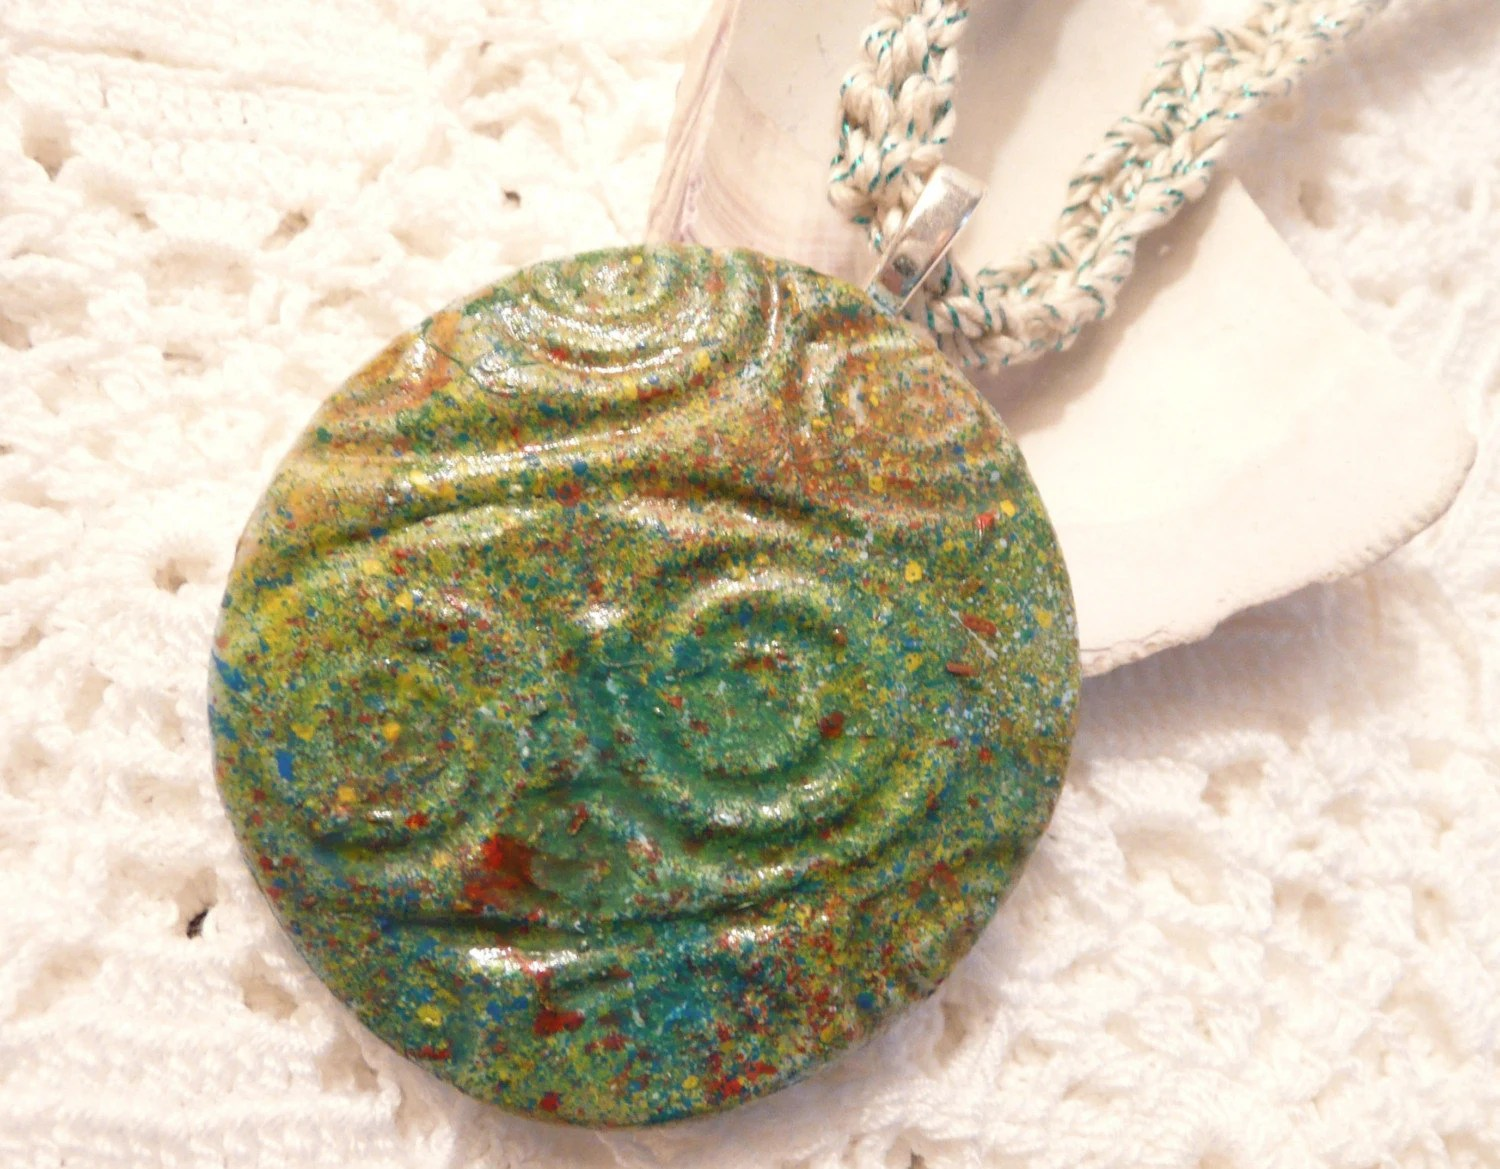 Clay and Crochet - Faux Ceramic Pendant on Crocheted Necklace